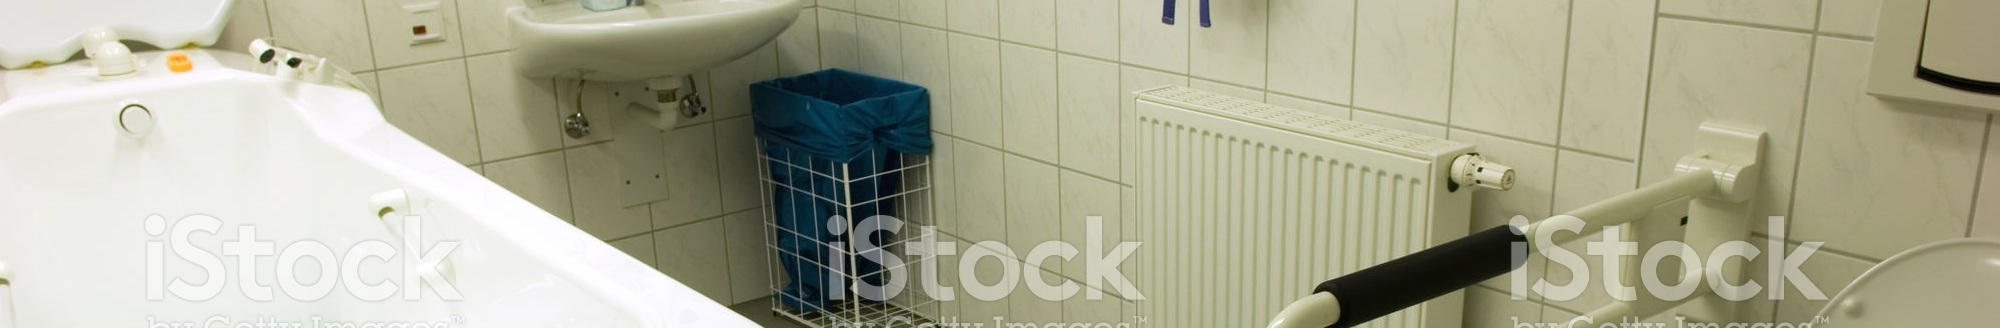 Commercial Care cleaning